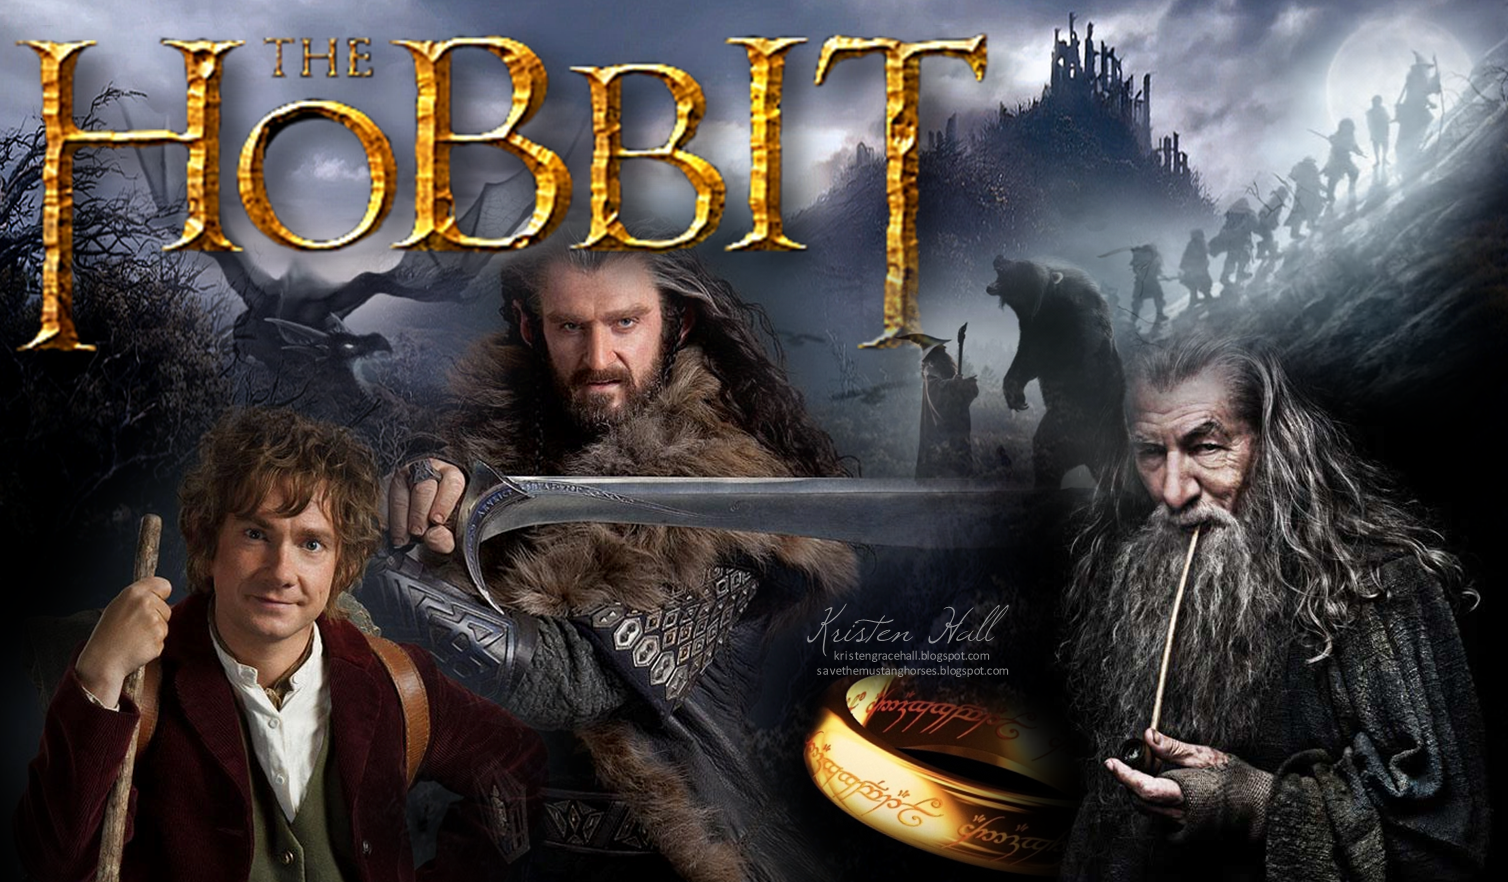 The Hobbit wallpaper 1508x882